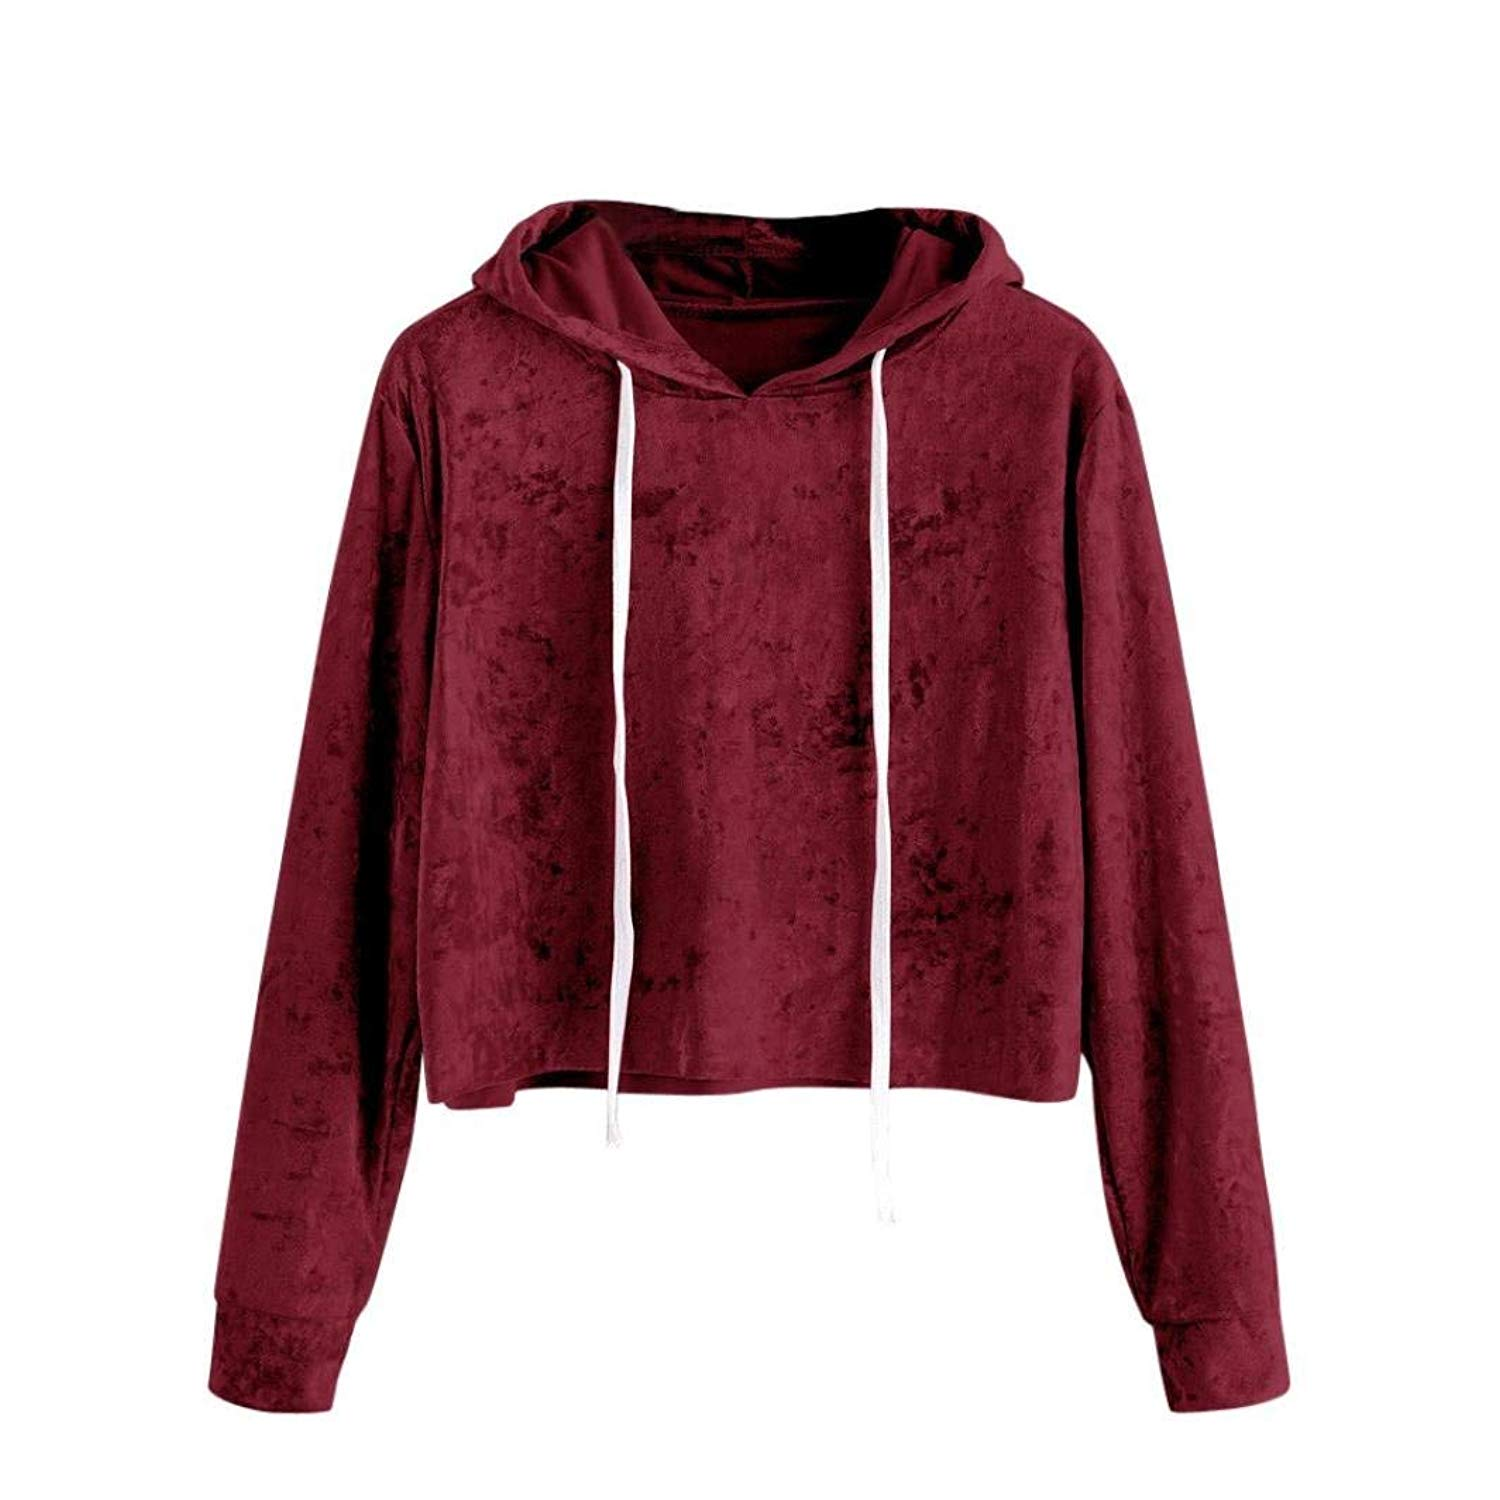 9dcafa21efd926 Get Quotations · BCDshop Women Casual Crop Hoodie Sweatshirt Top Teen Girl  Soft Velvet Pullover Shirts